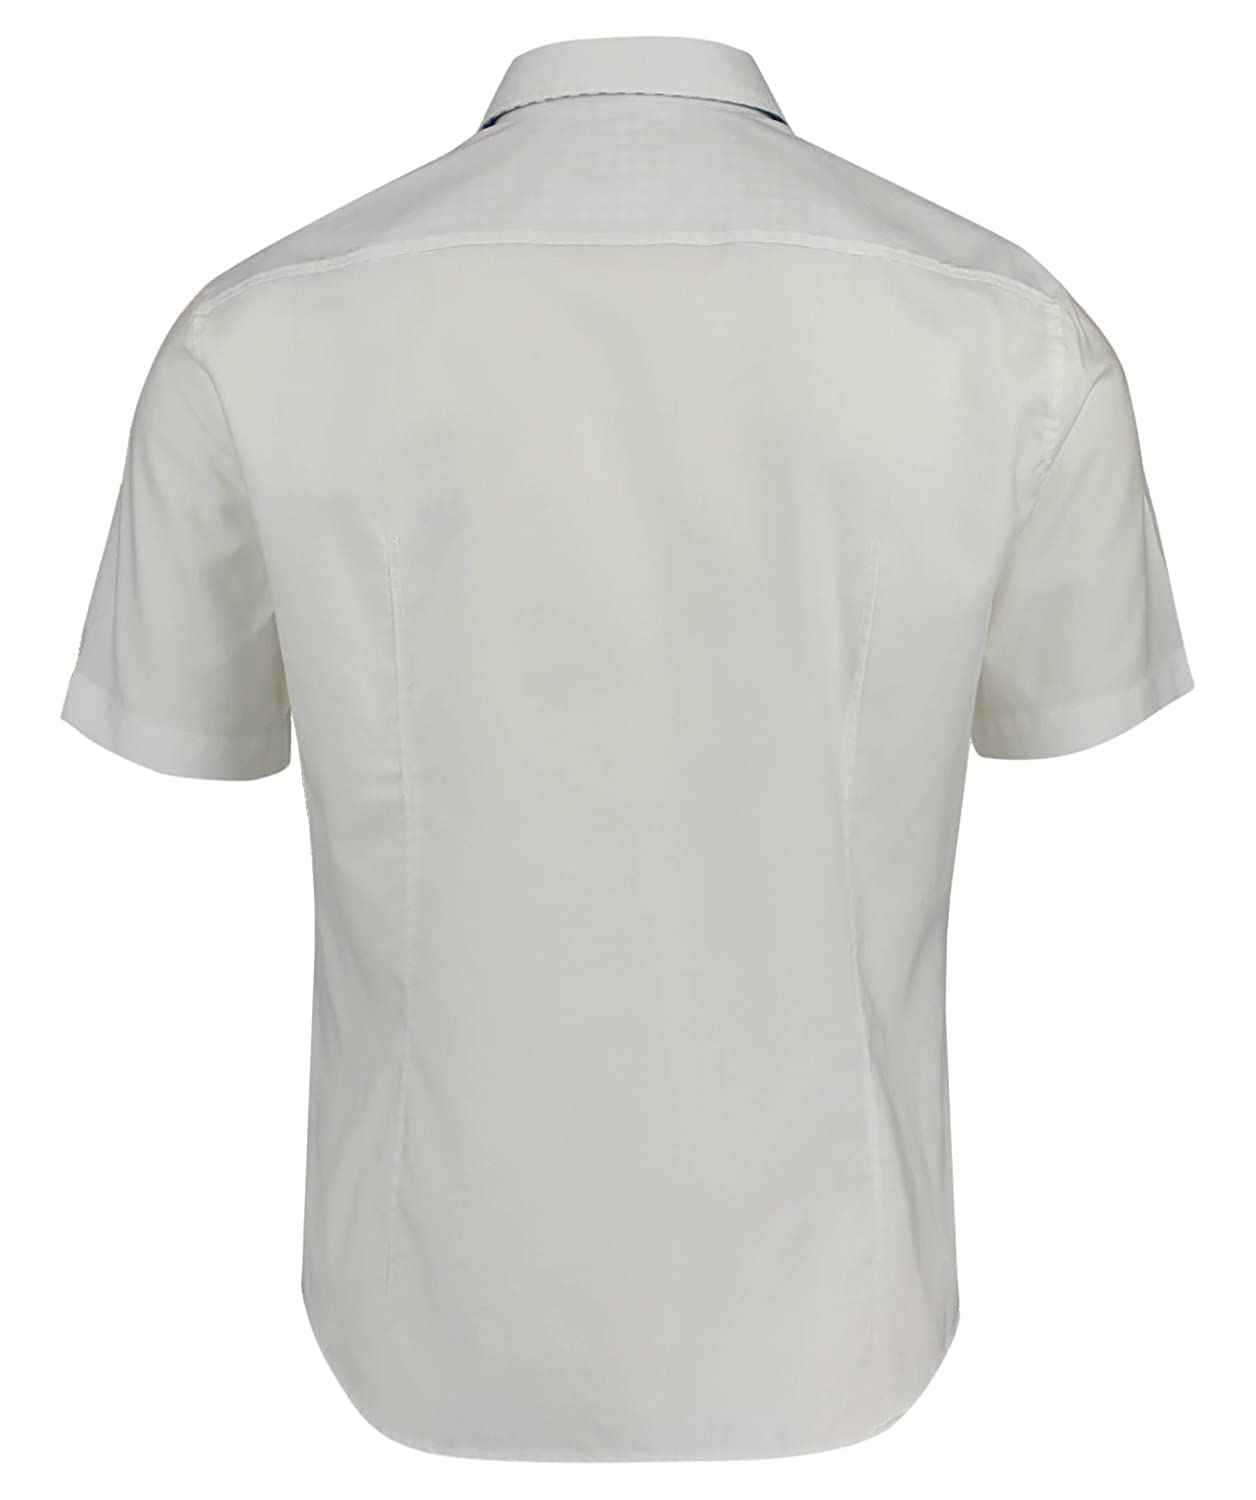 eeece9a8a BOSS Green Short Sleeve Shirt C-Busterino in White: Amazon.co.uk: Clothing